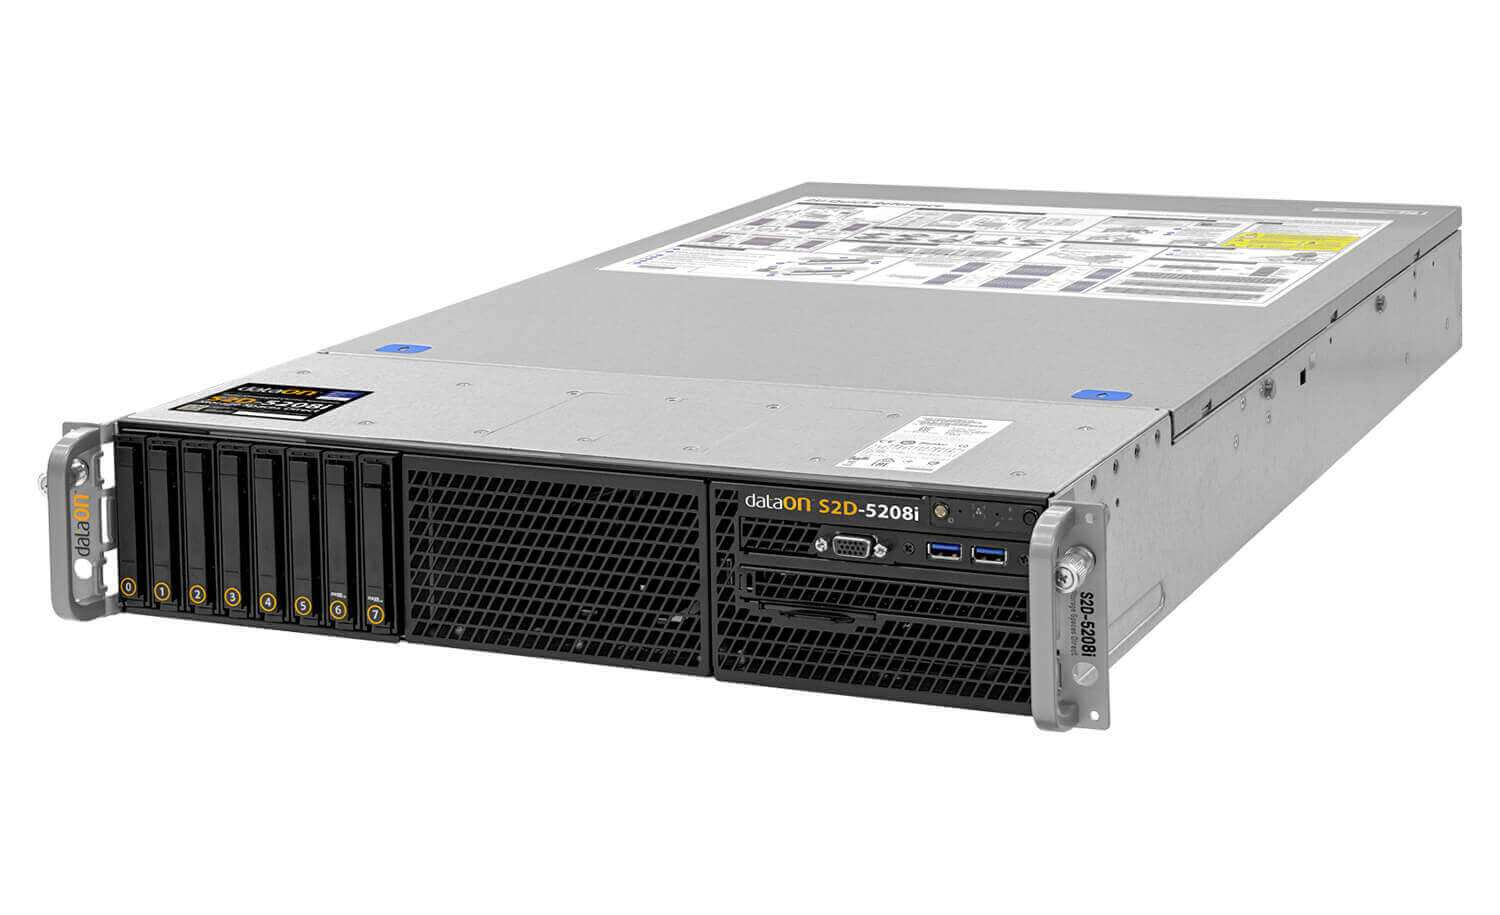 allsystems-producten-hyperconverged-systems-DataON_S2D-5208i_Front_Side_View